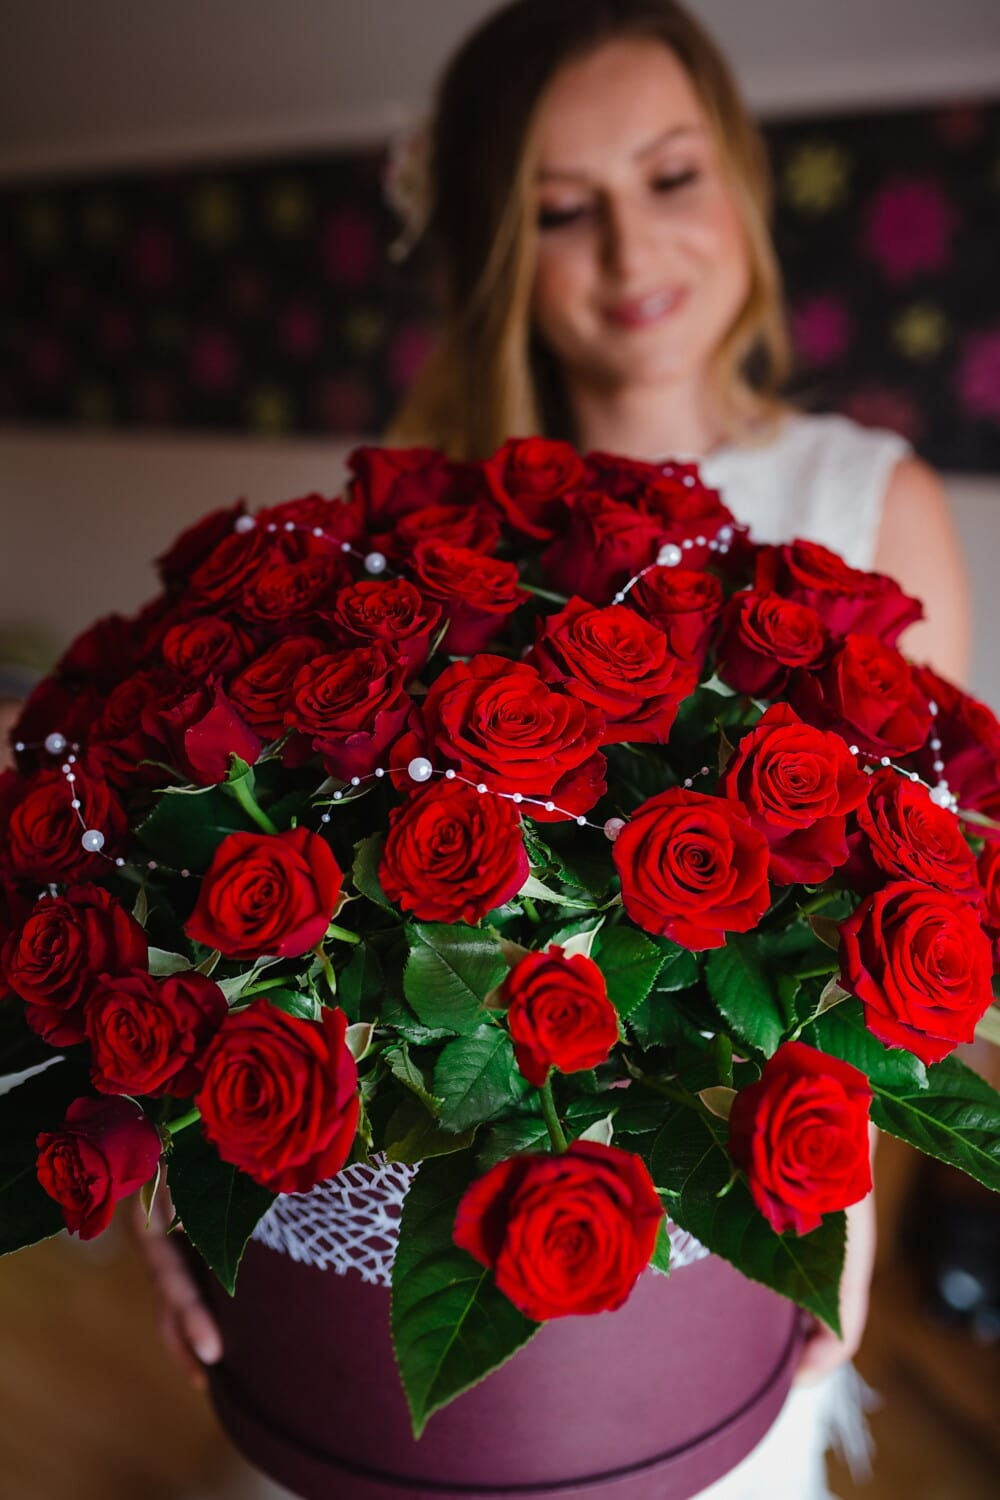 bouquet, gifts, roses, red, girlfriend, happiness, rose, love, arrangement, decoration